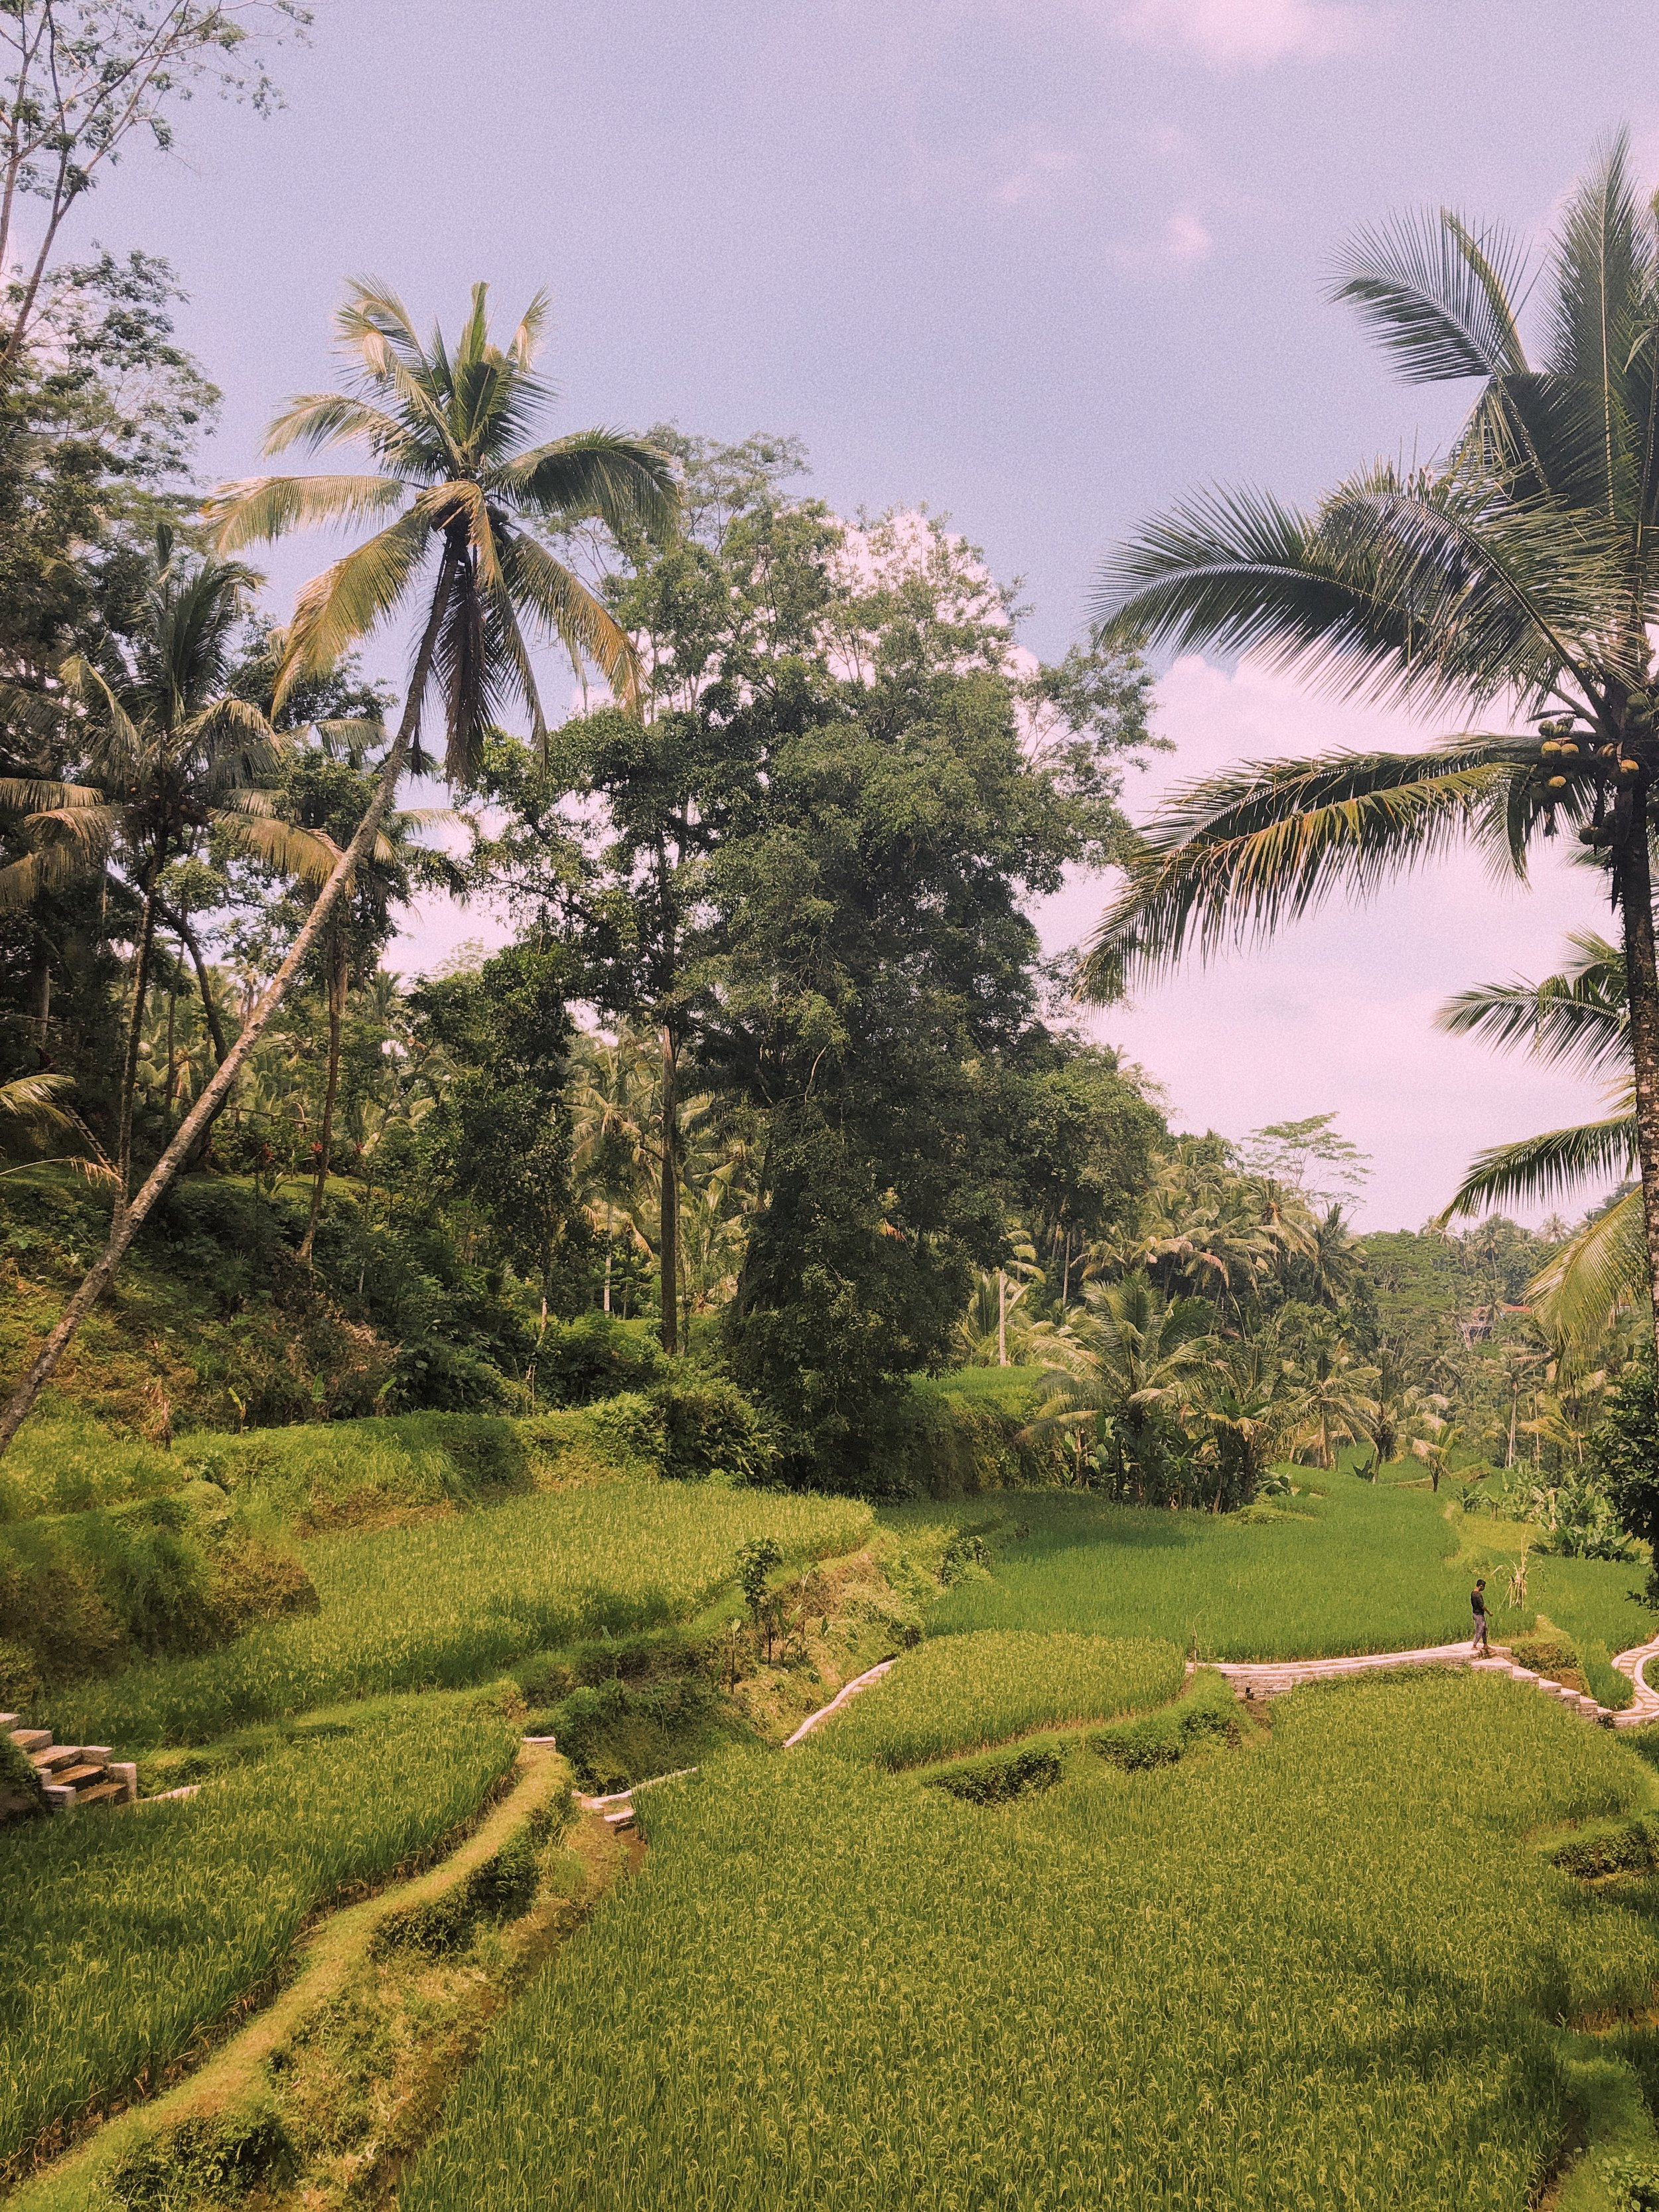 The Bali Travel Guide - Amour Ophelia